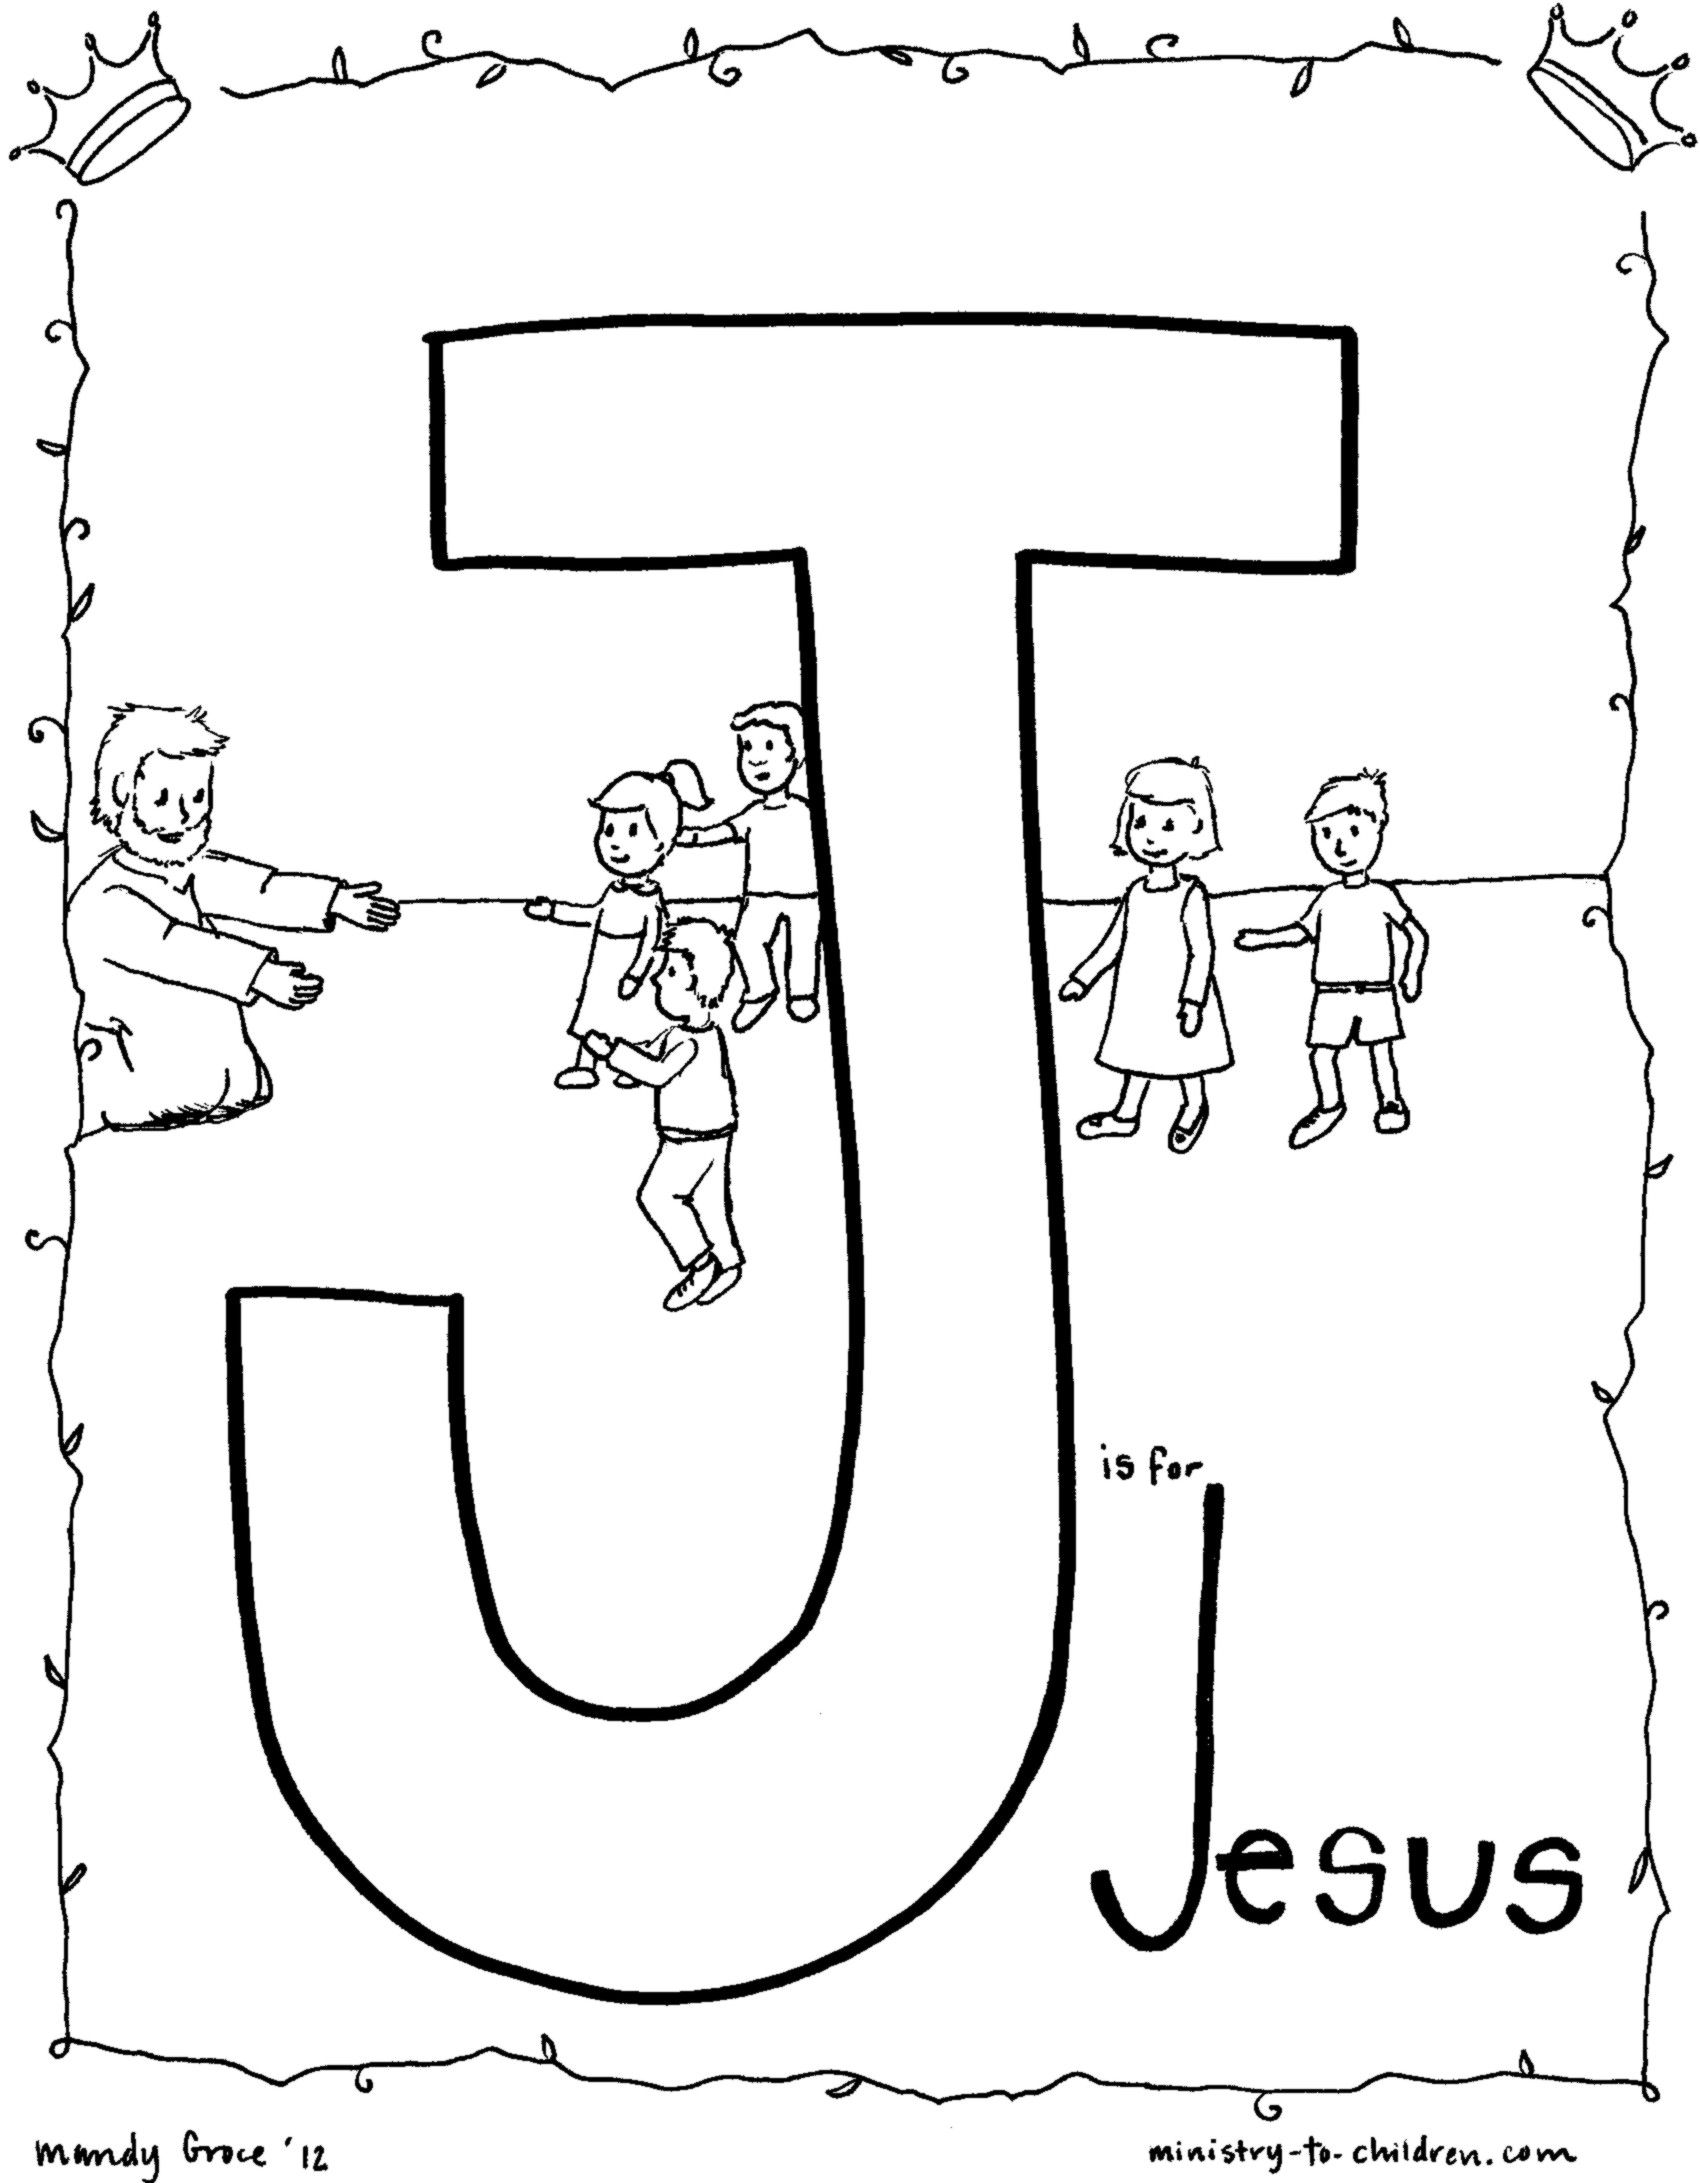 preschool jesus coloring pages bible alphabet coloring pages httpministry to children preschool jesus coloring pages